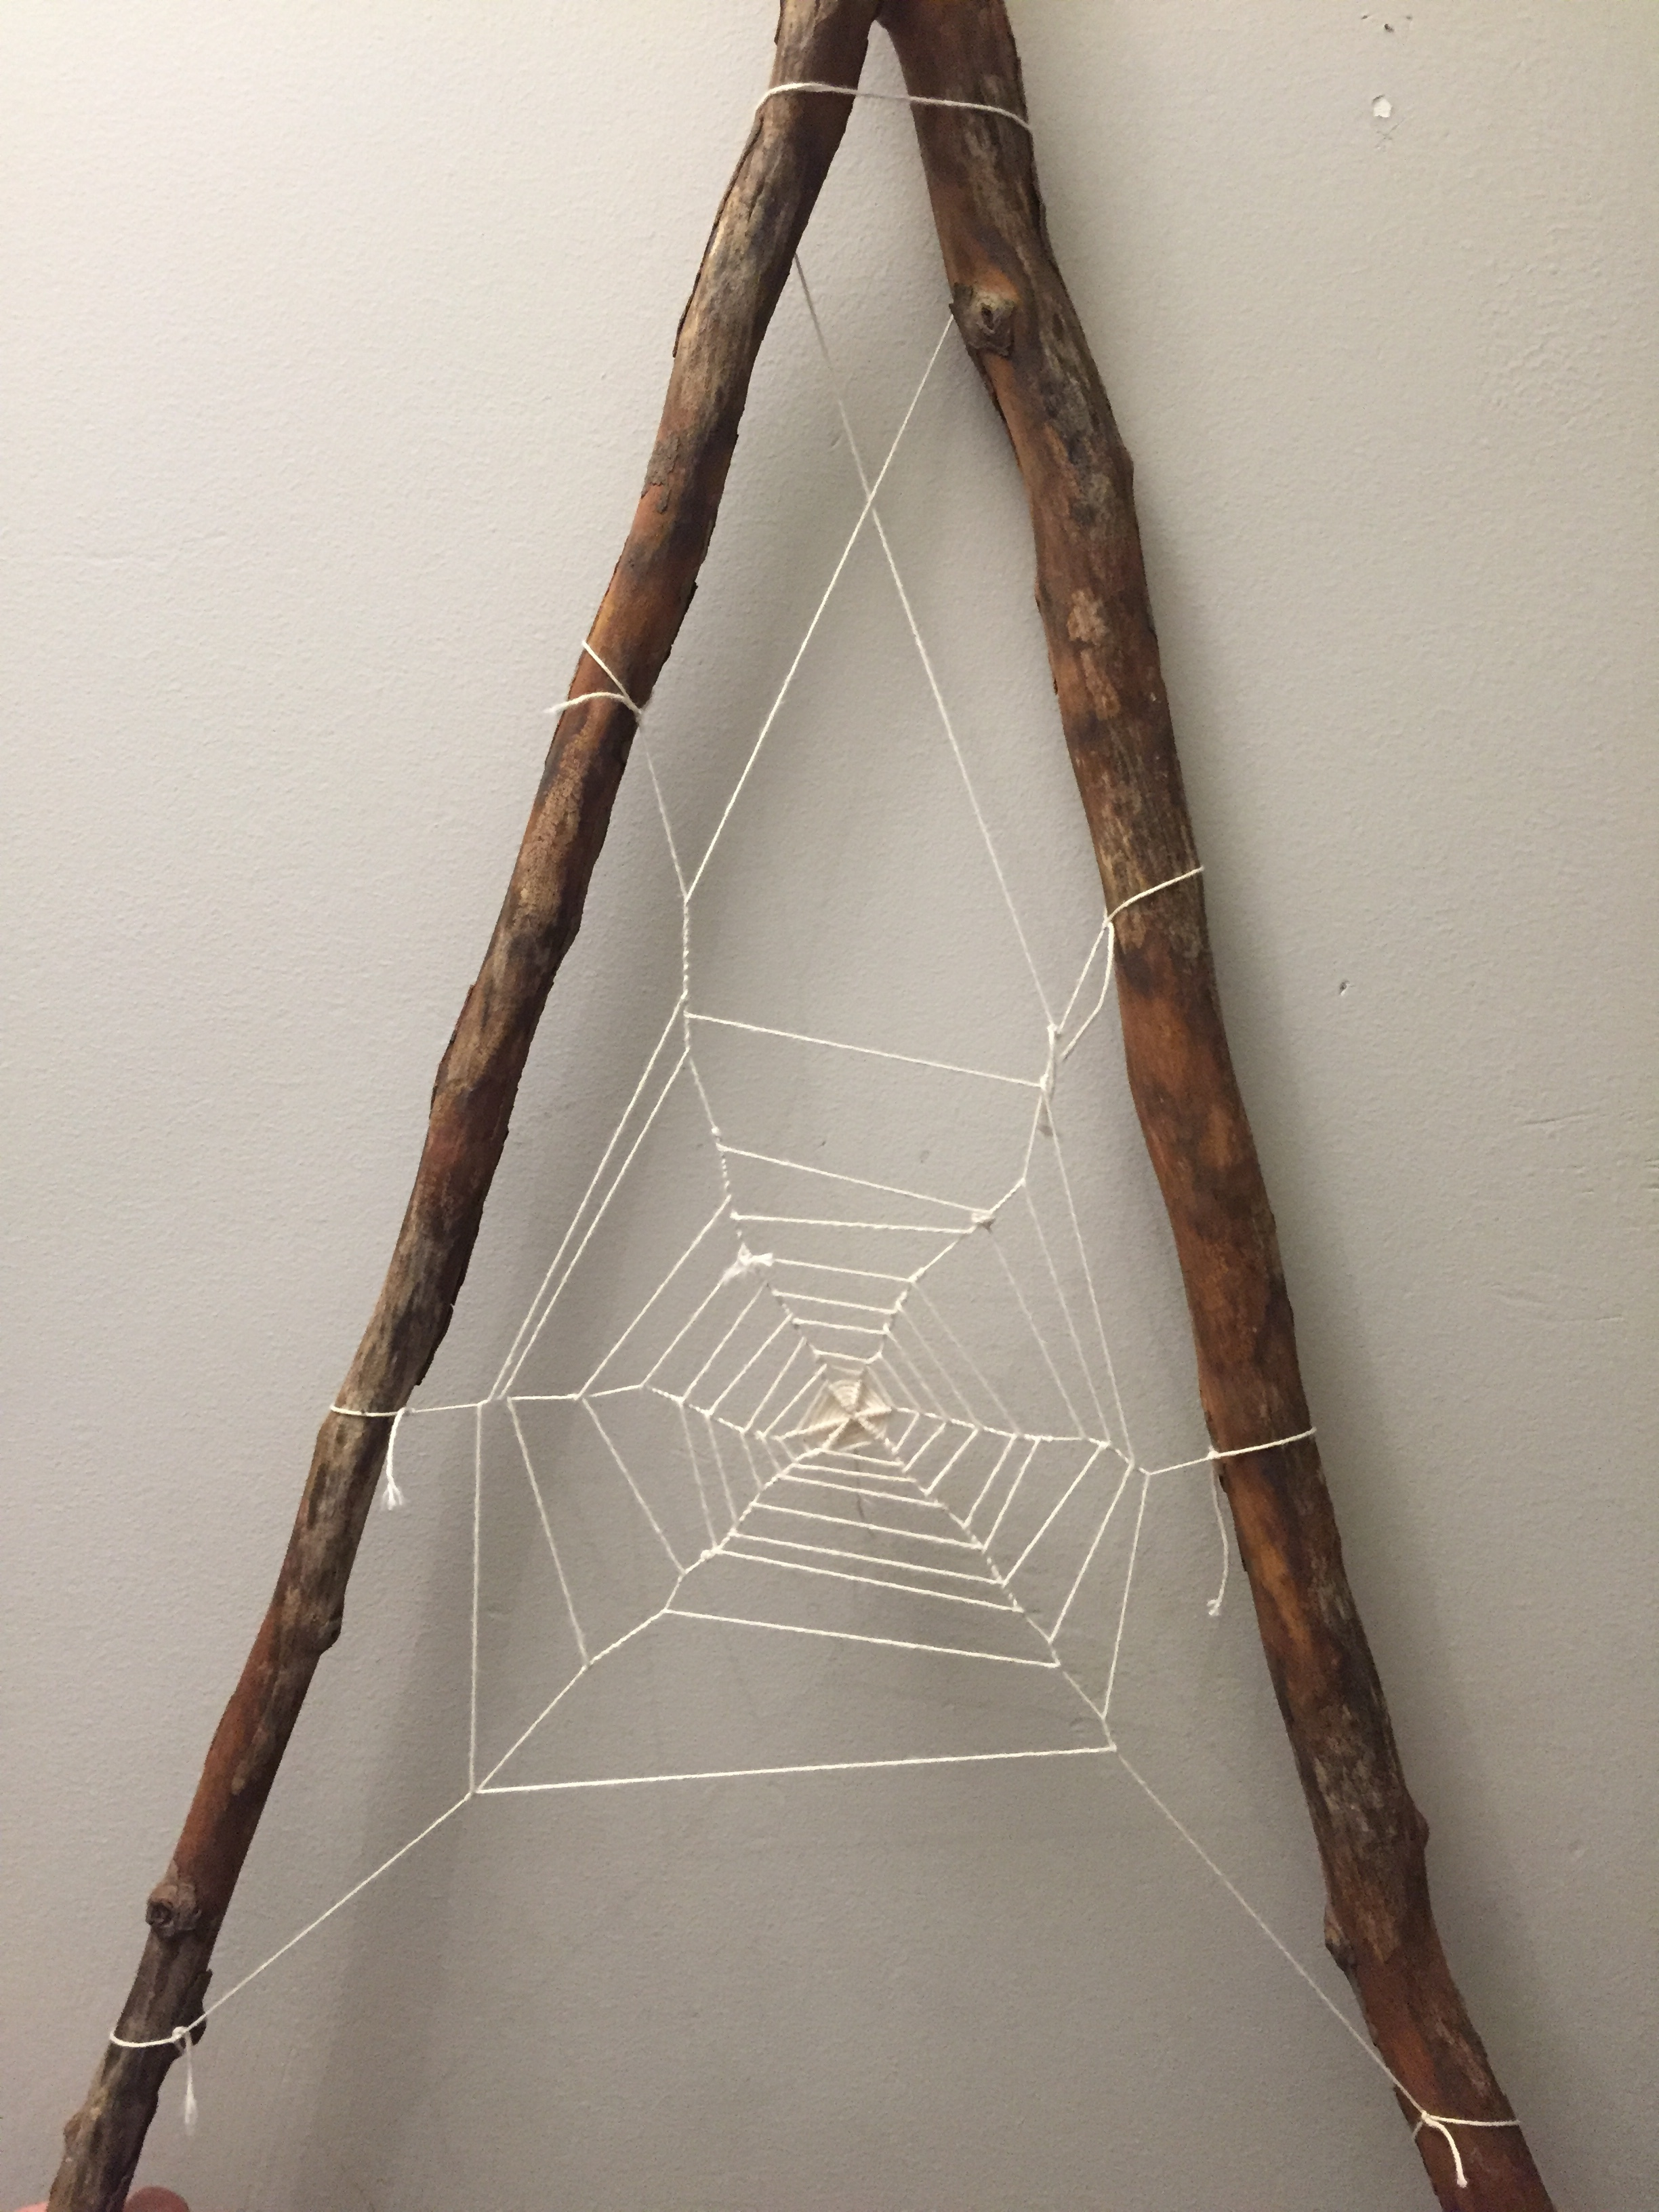 The completed web. Maya Eilam